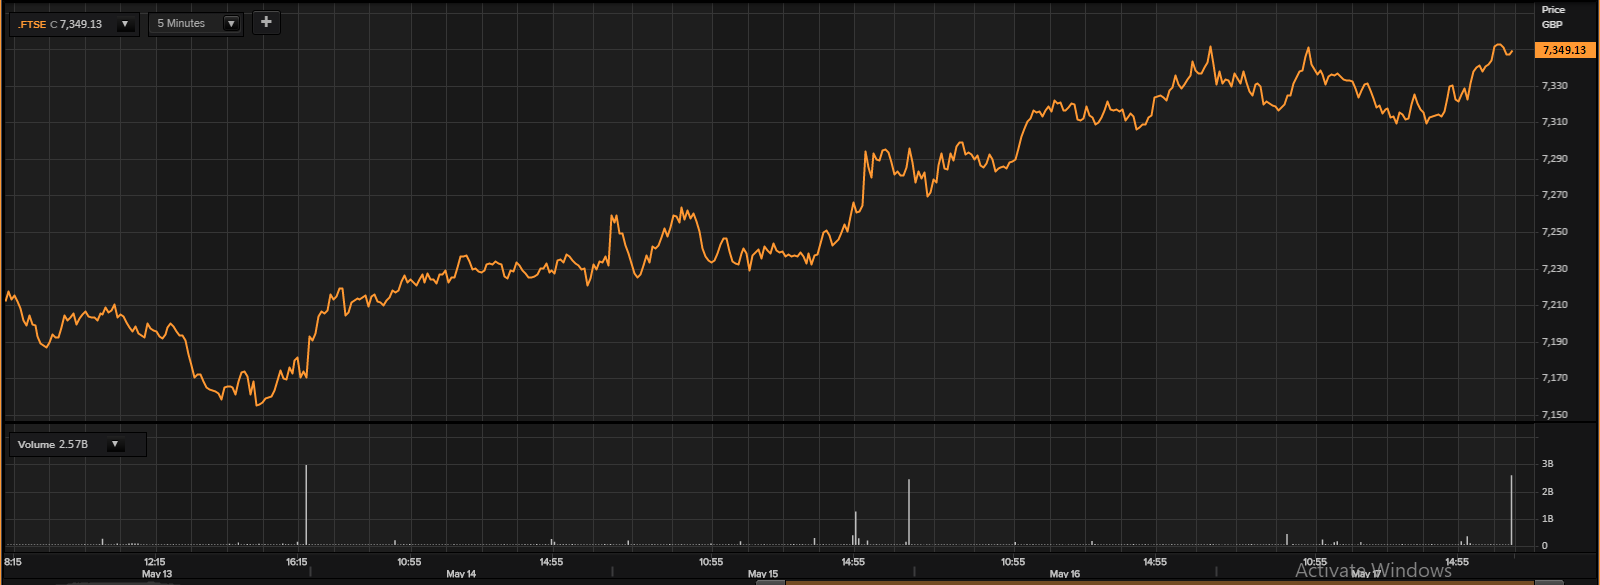 FTSE100 Index: 5-days Price Chart as on May 17, 2019. (Source: Thomson Reuters)